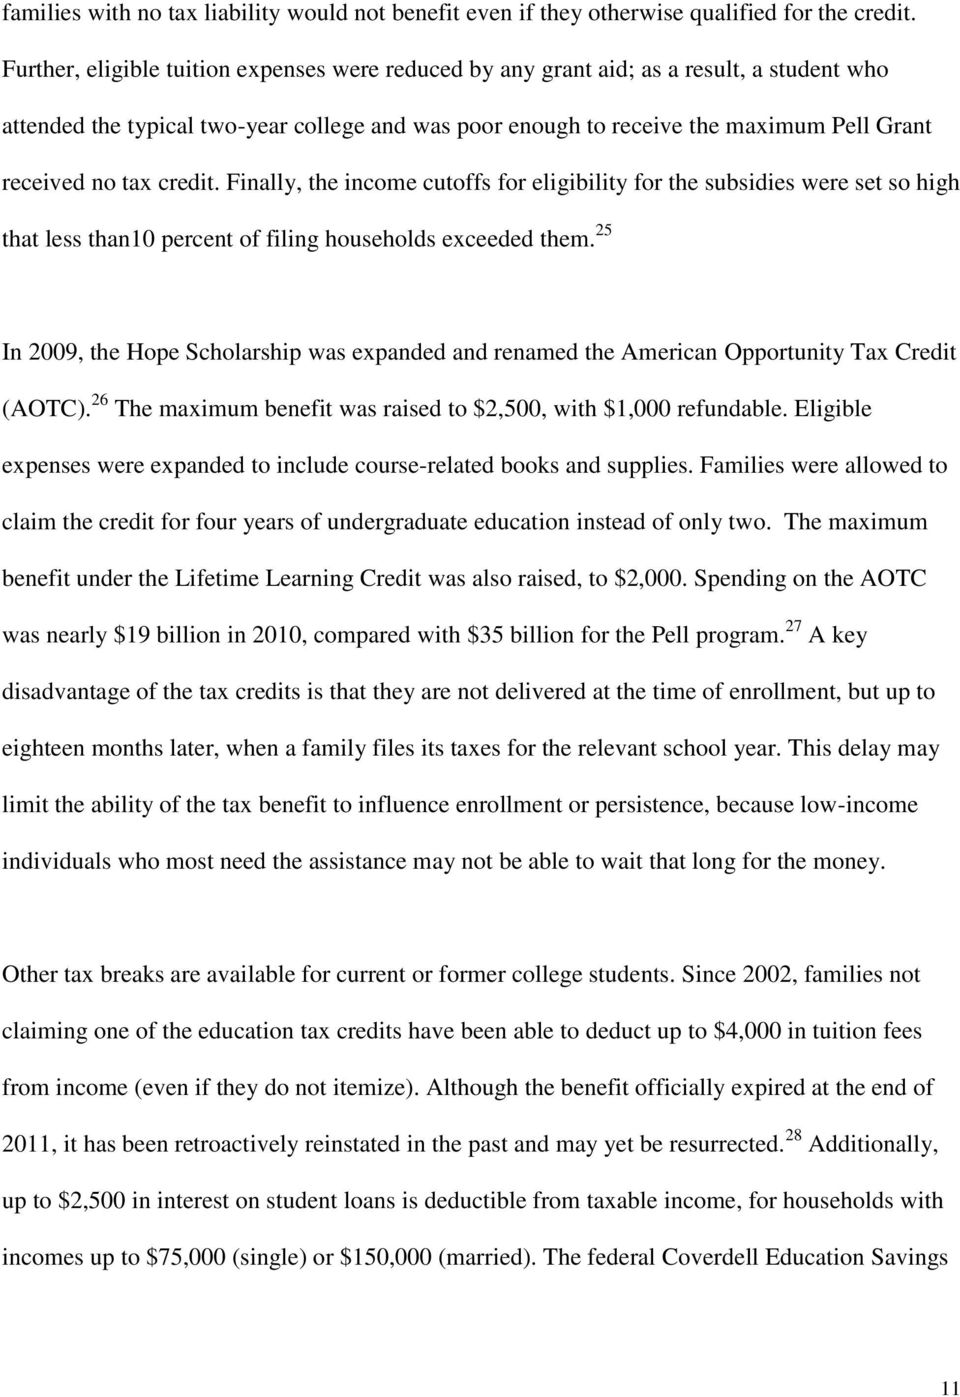 tax credit. Finally, the income cutoffs for eligibility for the subsidies were set so high that less than10 percent of filing households exceeded them.